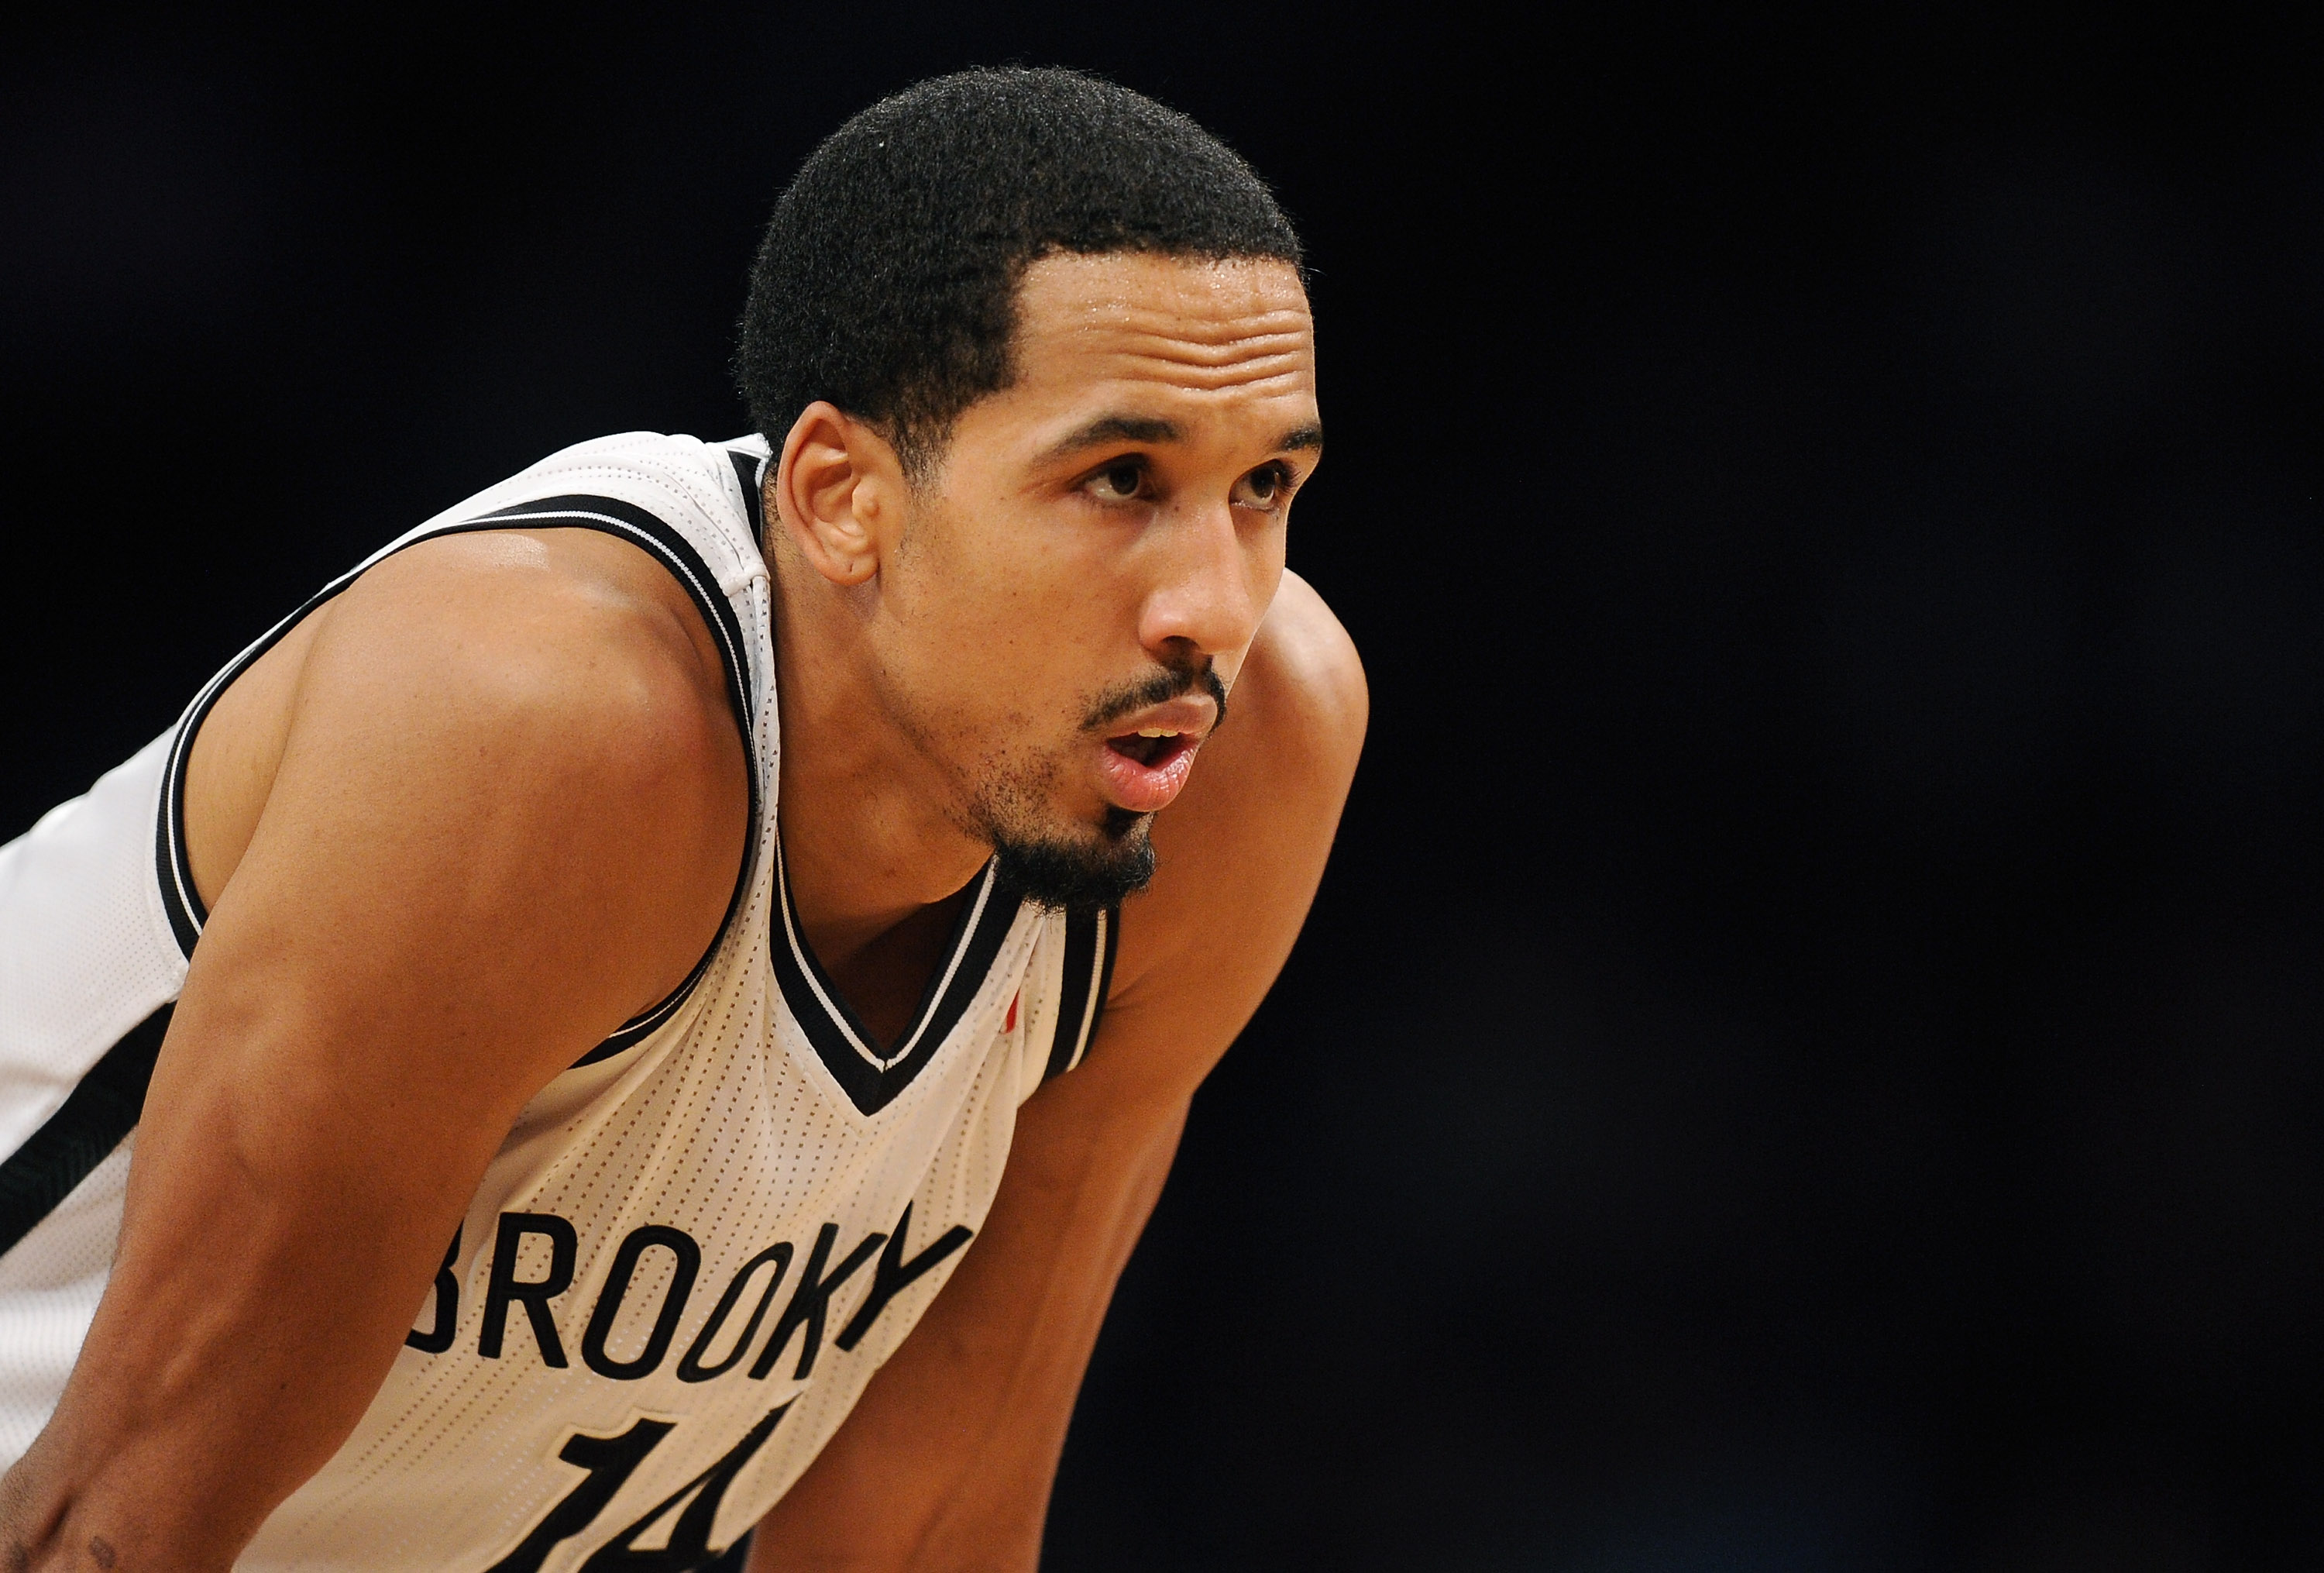 shaun livingston widescreen wallpaper 63840